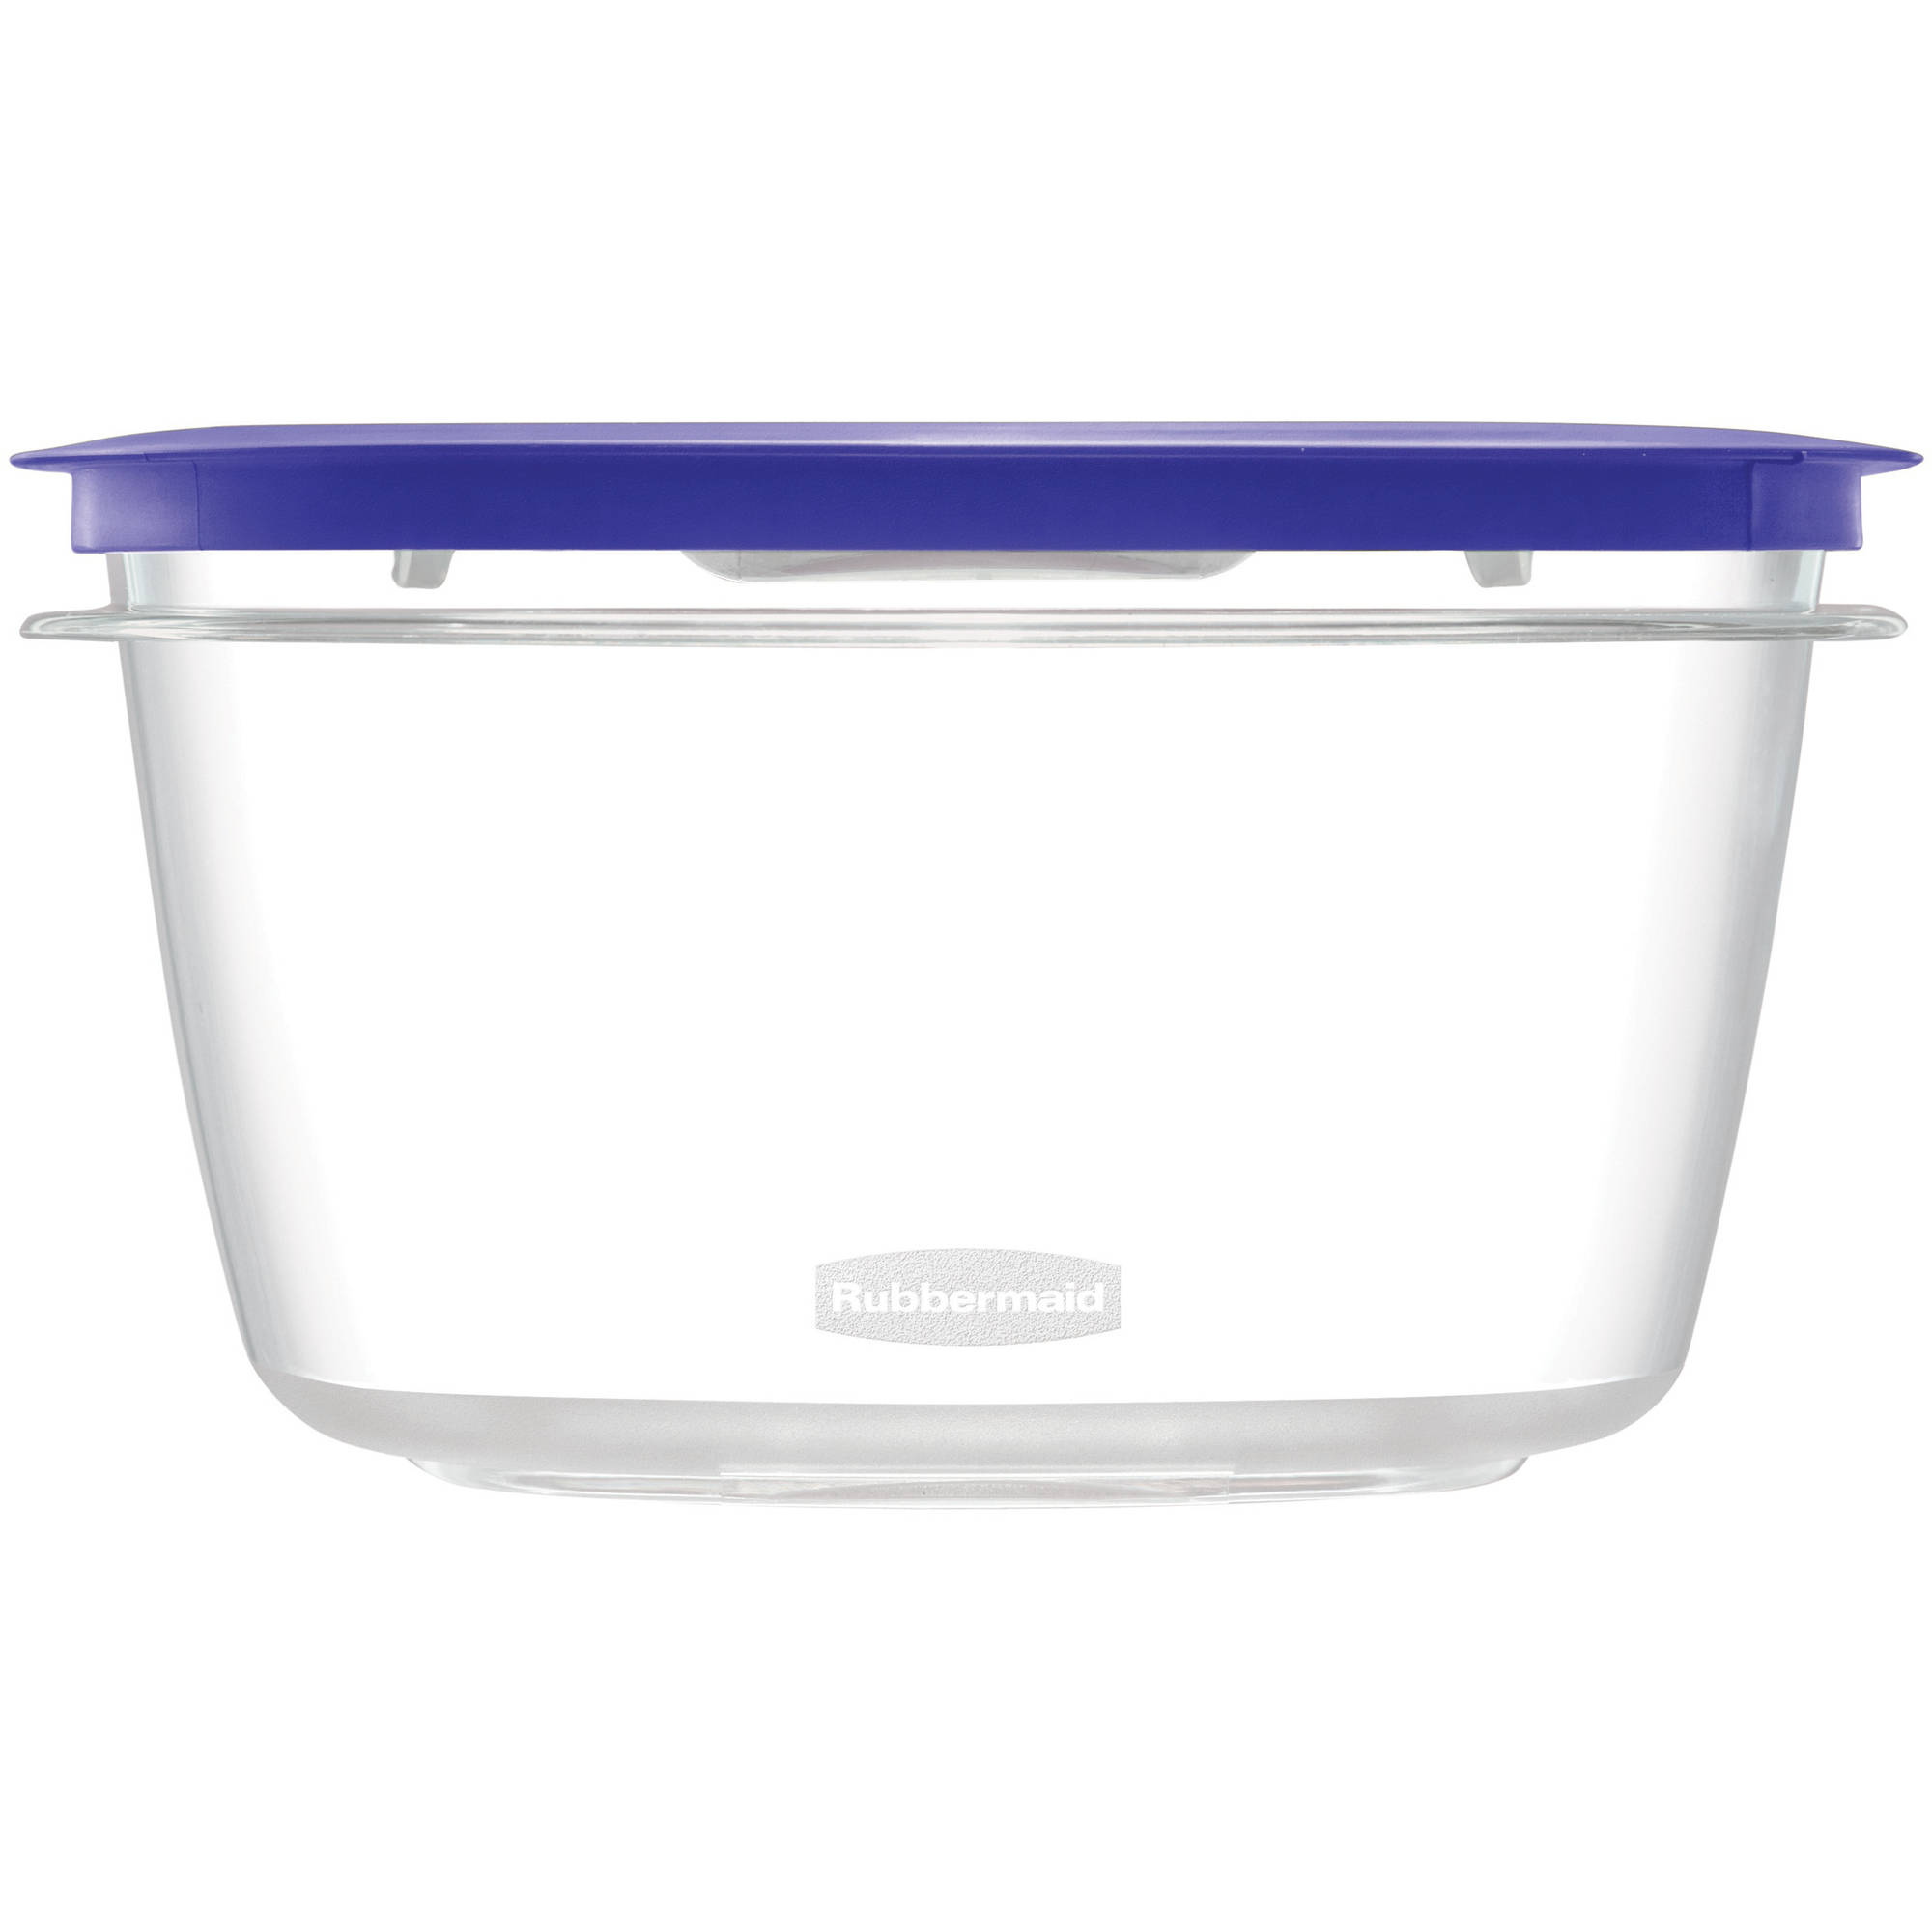 Rubbermaid Premier Food Storage Container, 14 Cup, Iris